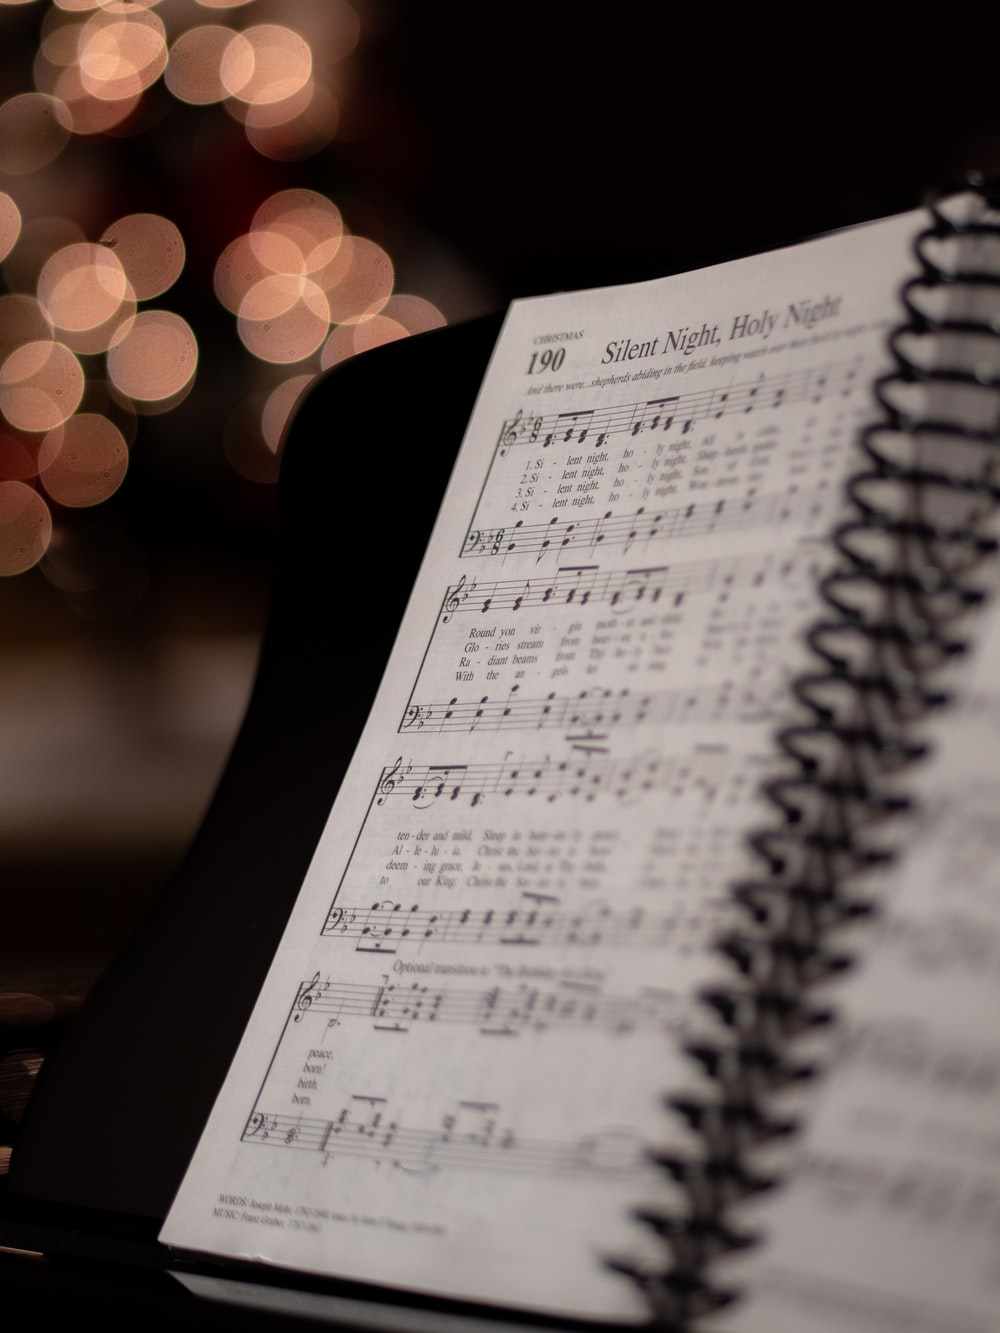 opened musical book at Silent Night, Holy Night page